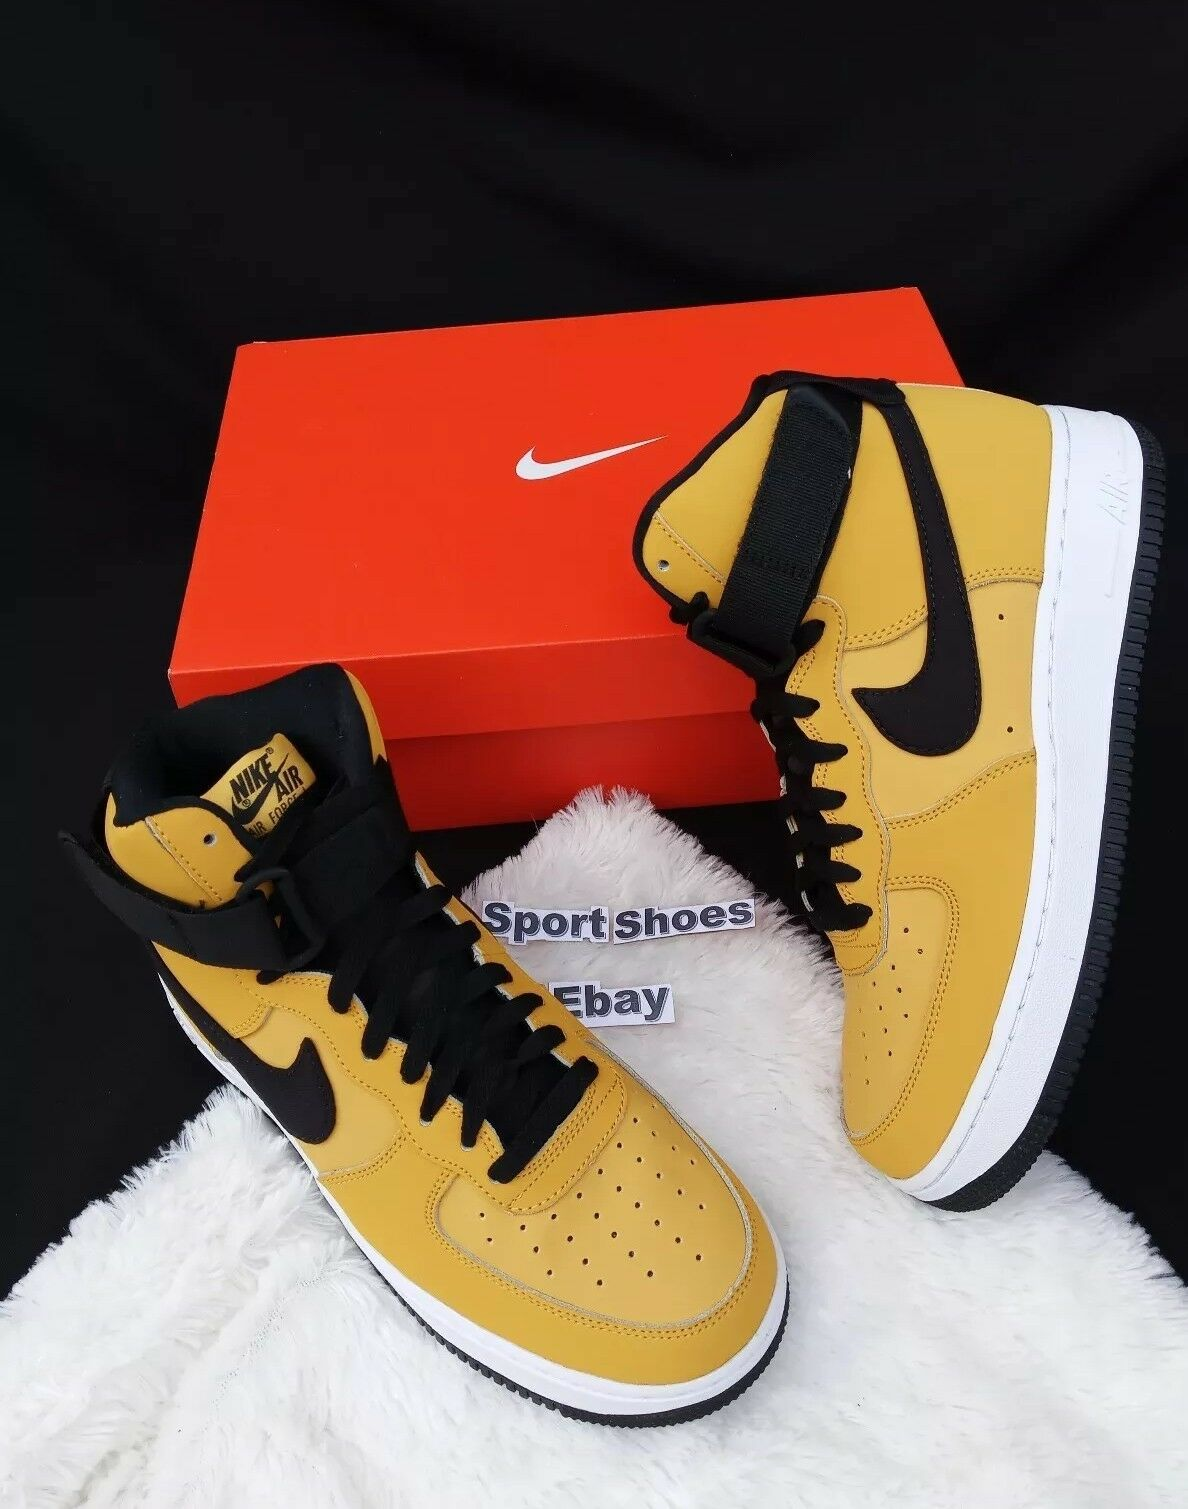 7 MEN'S NIKE AIR FORCE 1 HIGH '07 LTHR LEATHER STRAP AT4963 700 YELLOW BLACK